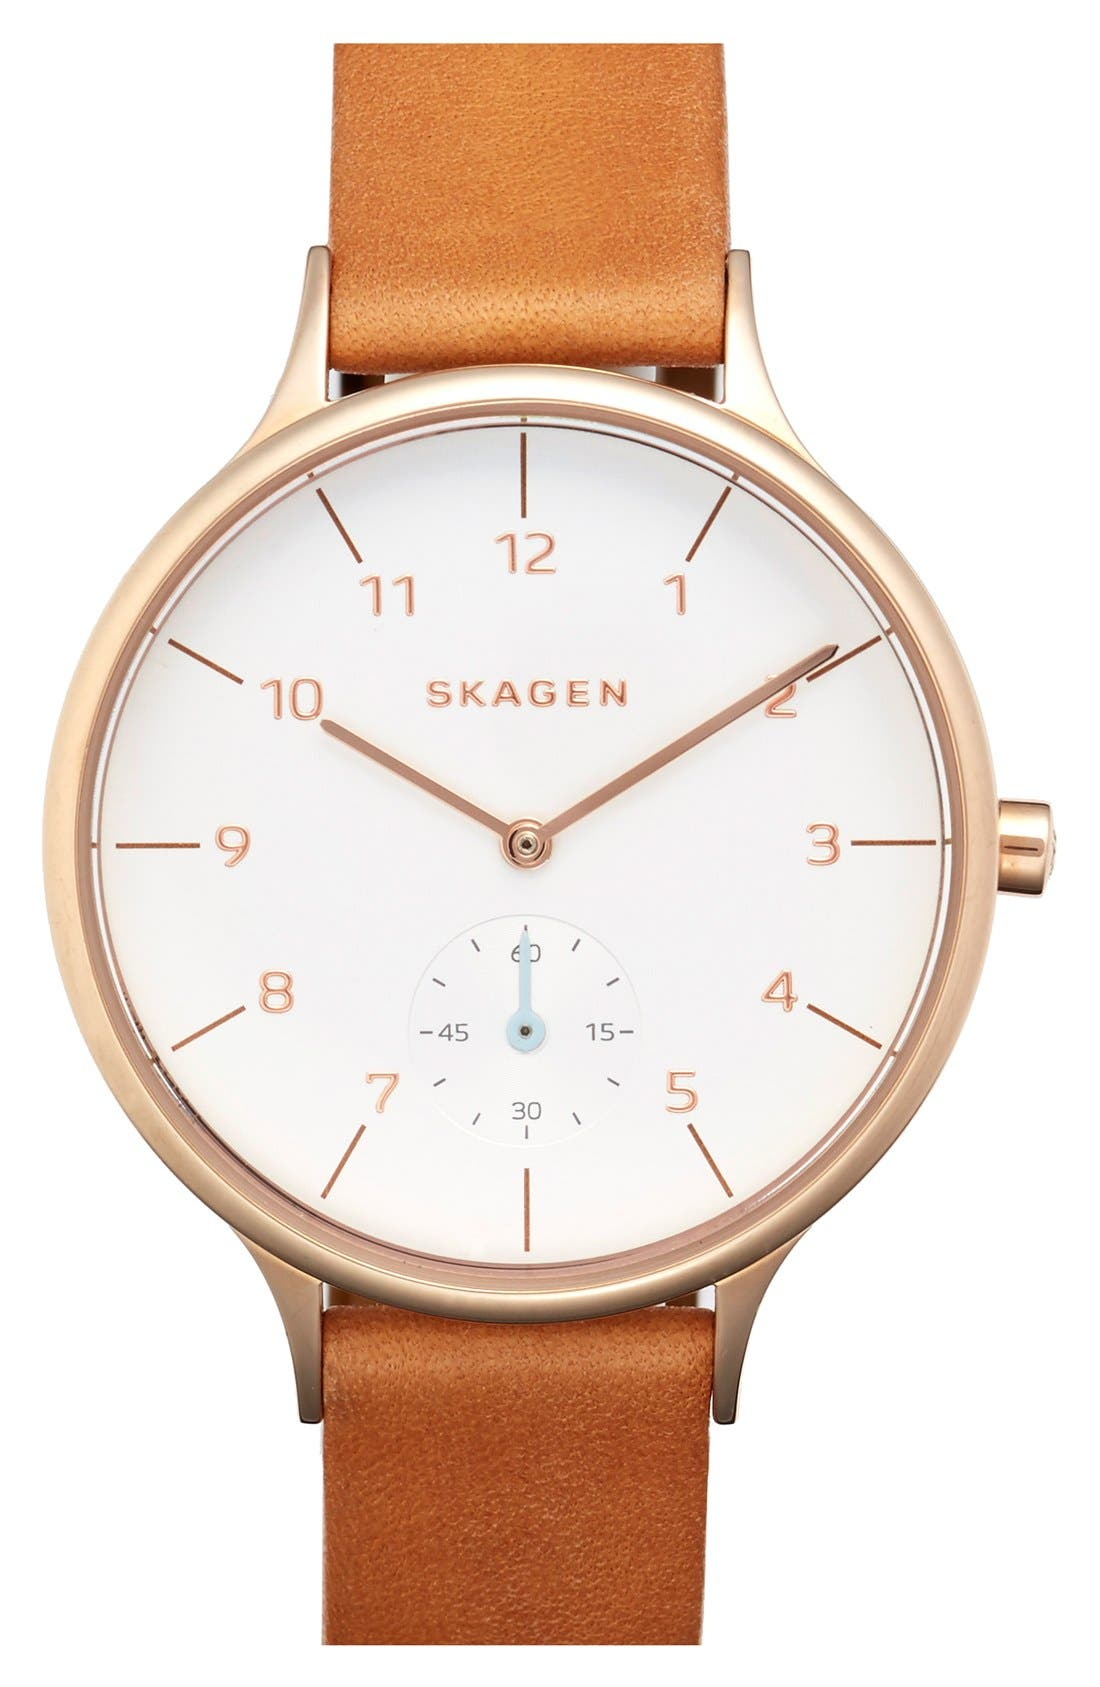 SKAGEN 'Anita' Leather Strap Watch, 34mm, Main, color, BROWN/ ROSE GOLD/ WHITE